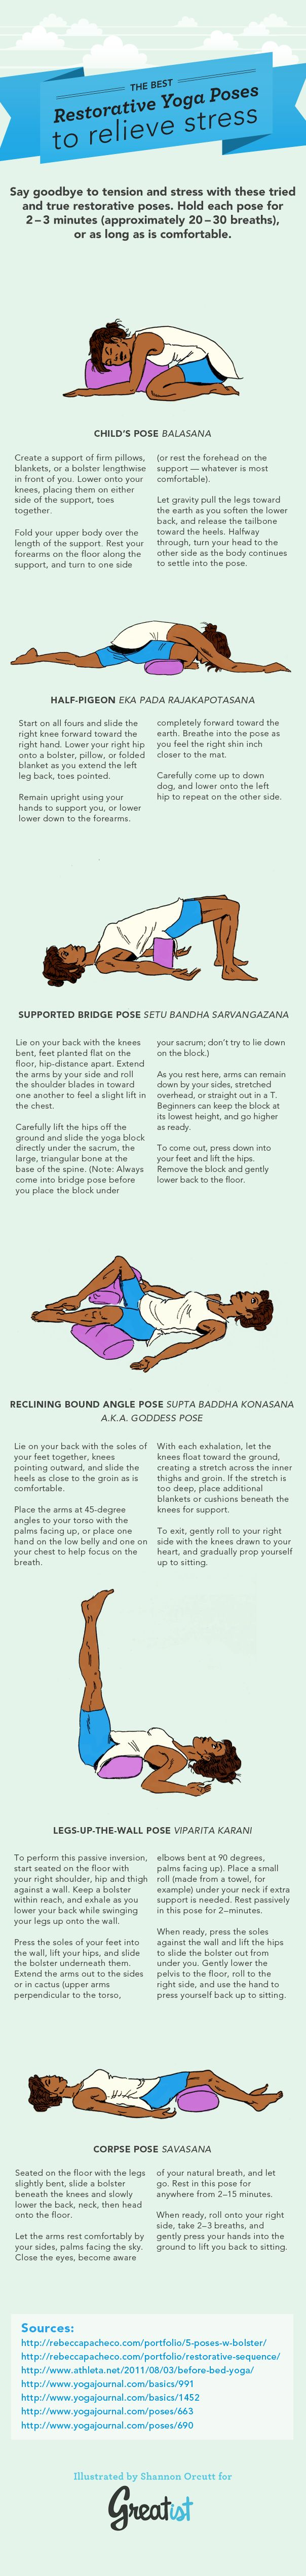 The Best Restorative Yoga Poses to Relieve Stress.